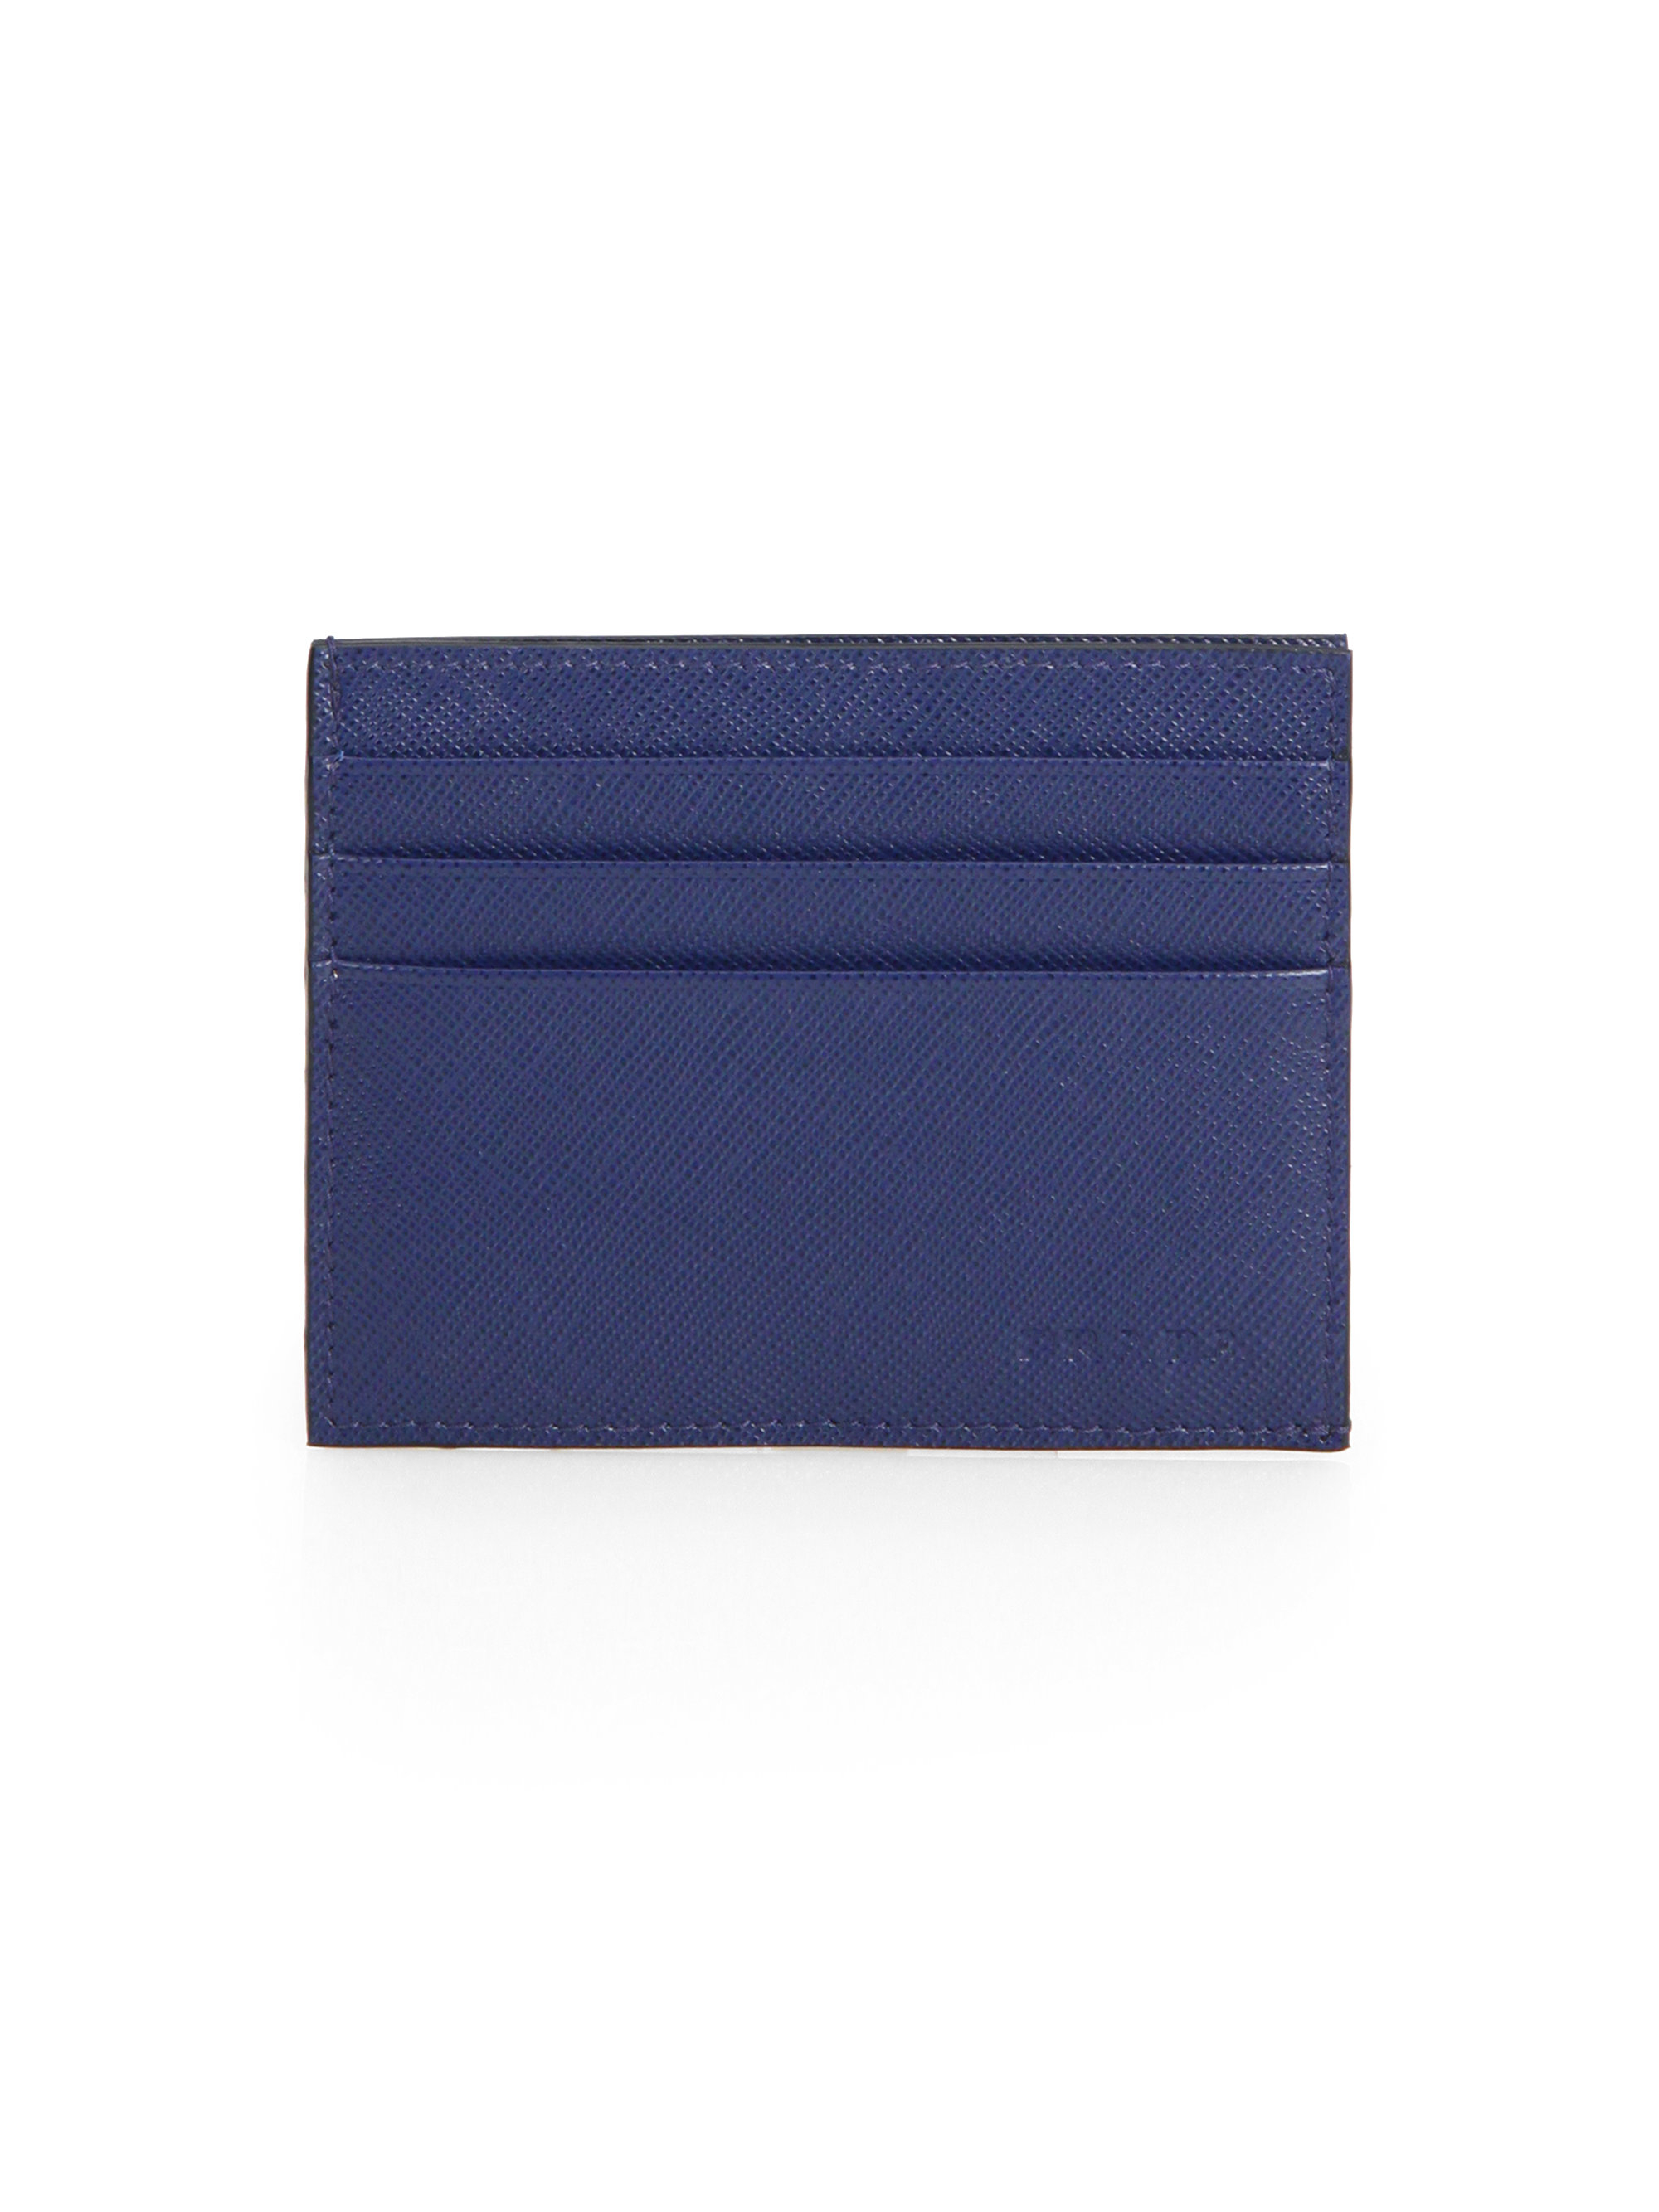 Prada Saffiano Leather Passport Holder Card Case Knock